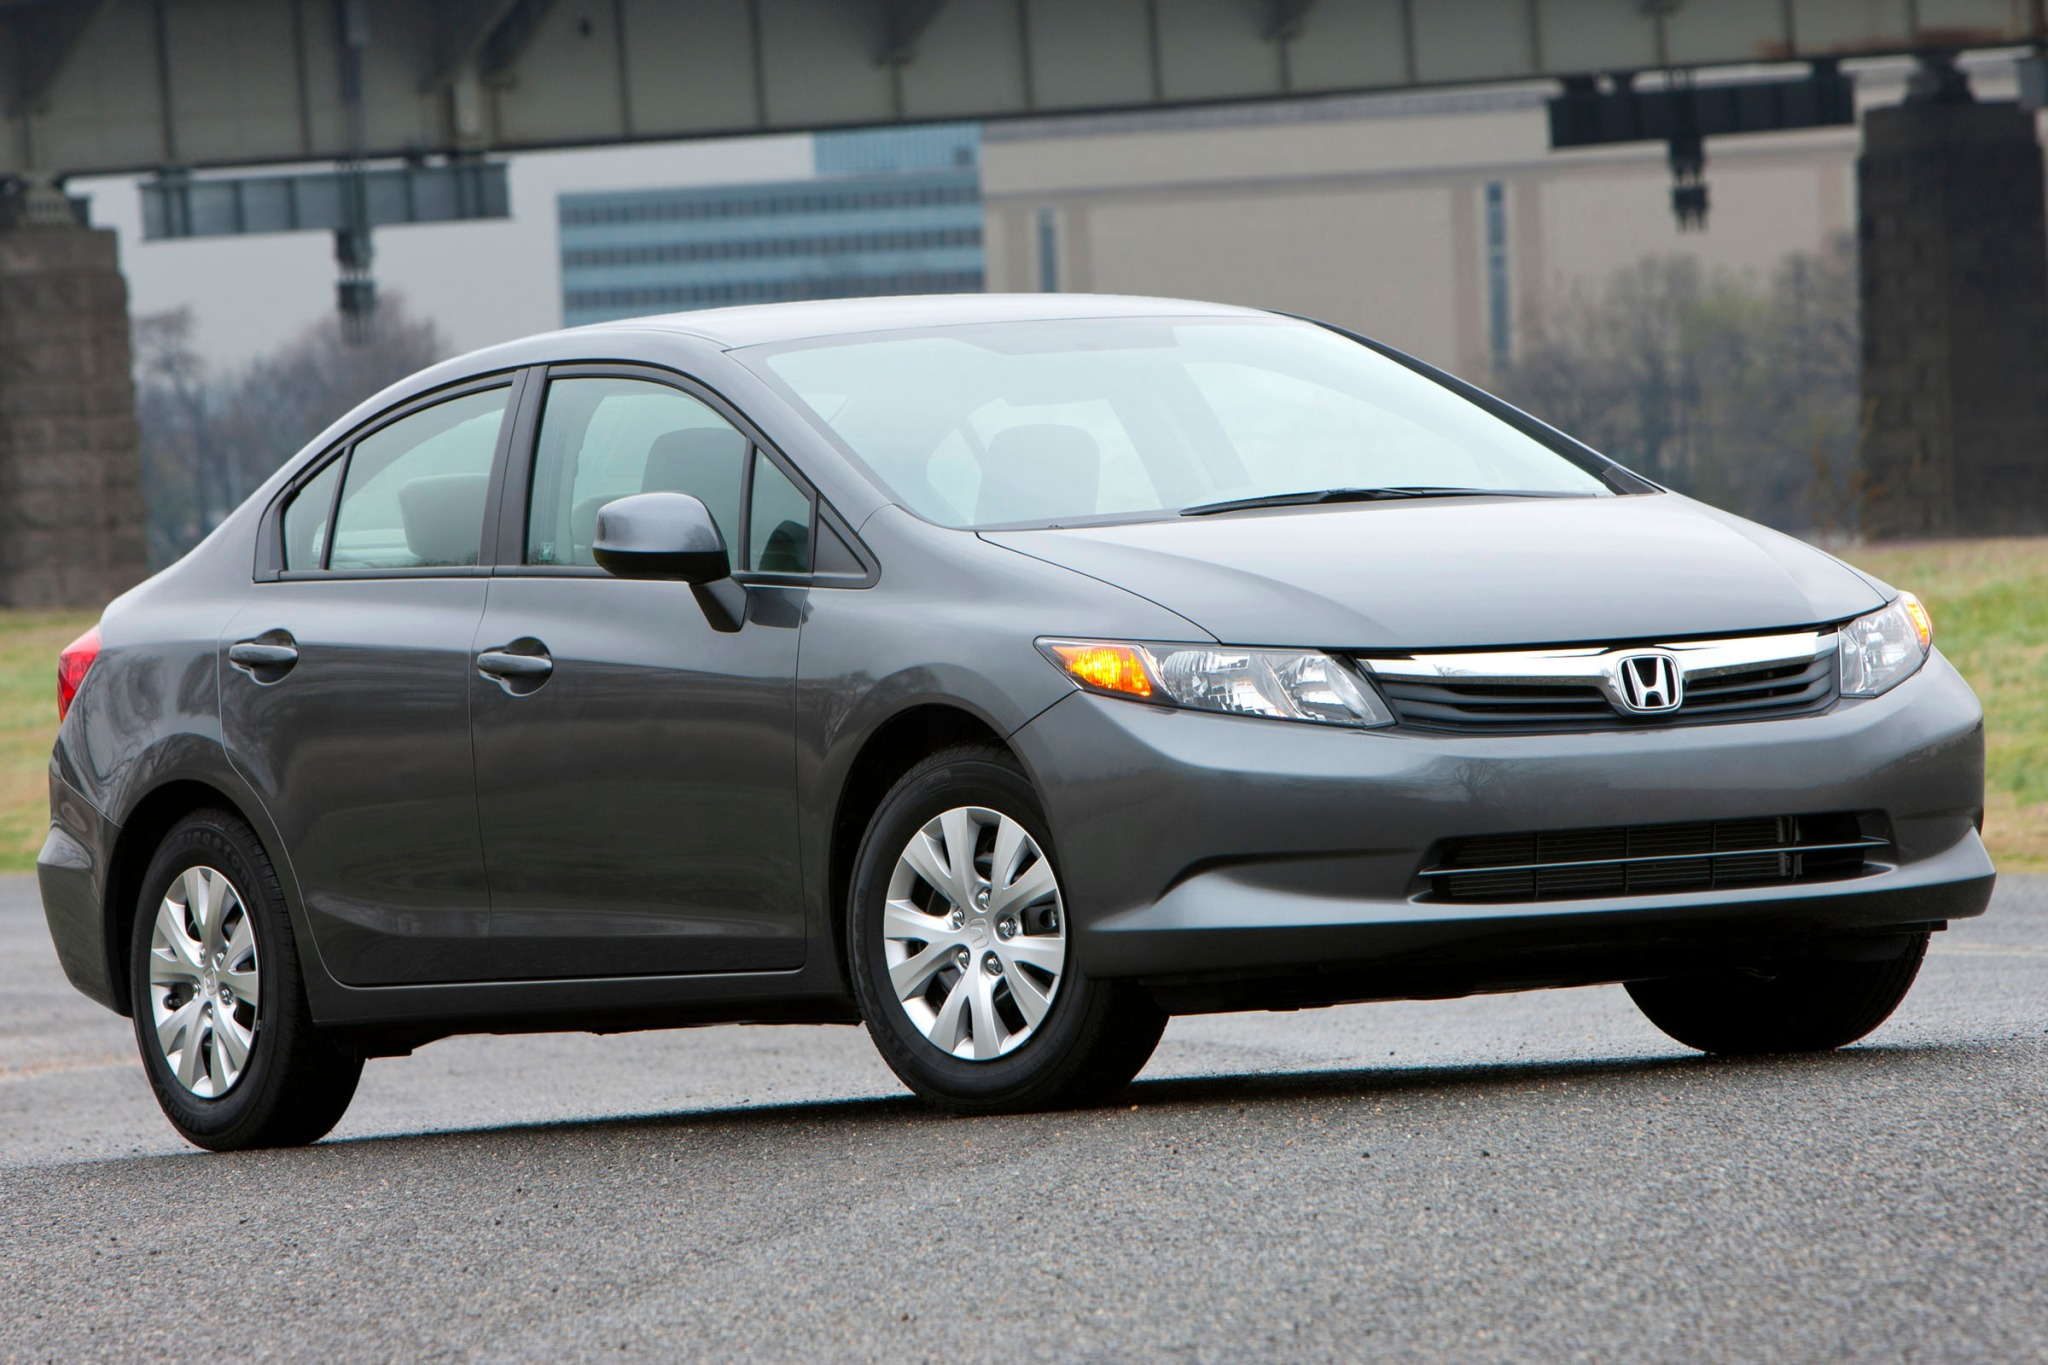 2012 Honda Civic Si Coupe exterior #7